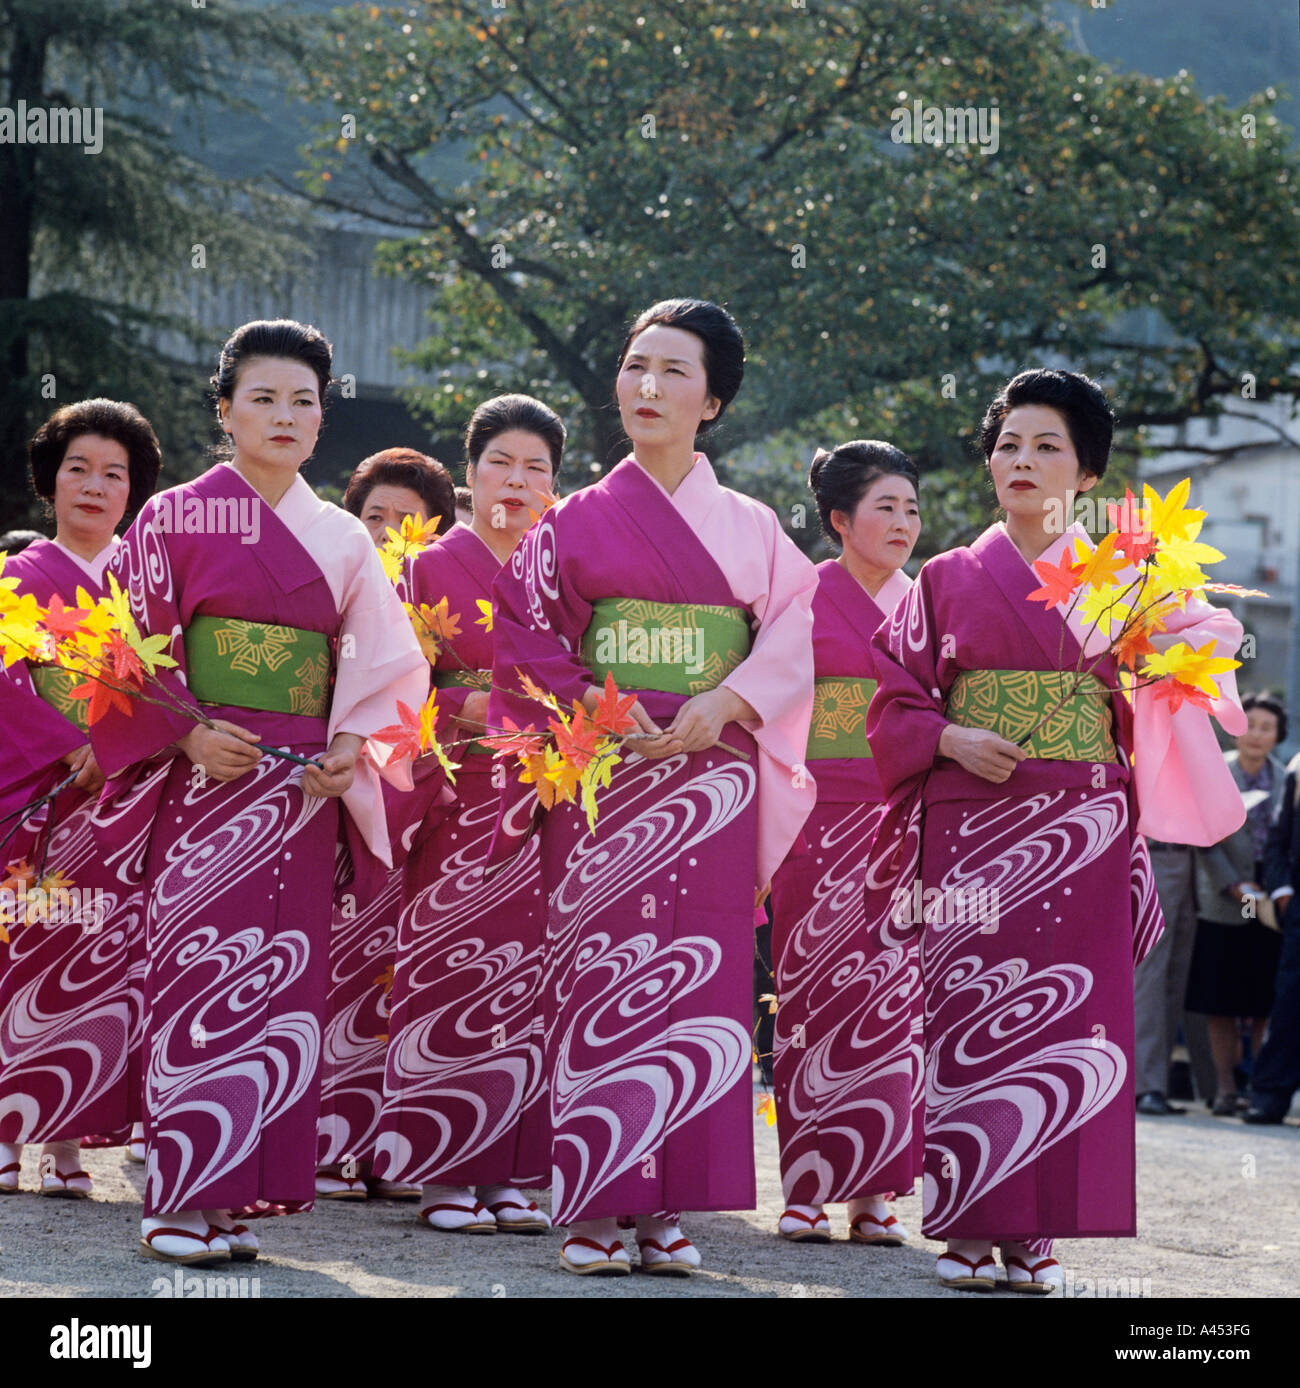 Japan Hakone The March of The Feudal Lords. A team of dancing girls march along the route. - Stock Image